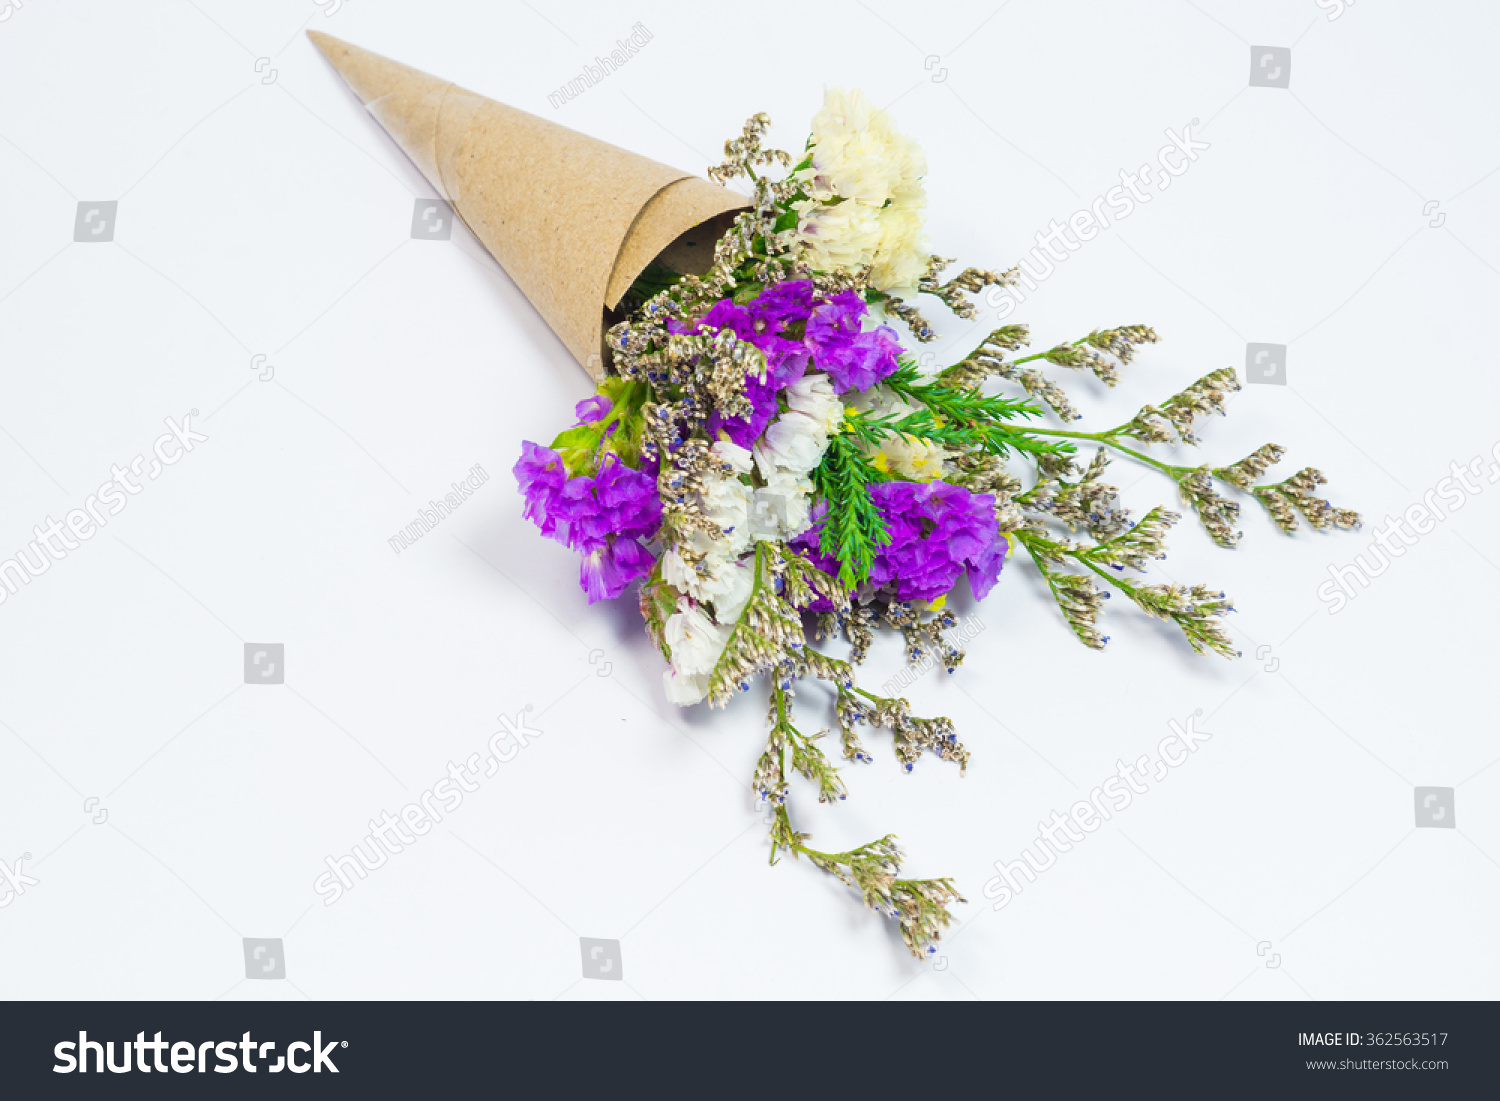 Pink yellow statice flower bouquet on stock photo safe to use pink and yellow statice flower bouquet on white background mightylinksfo